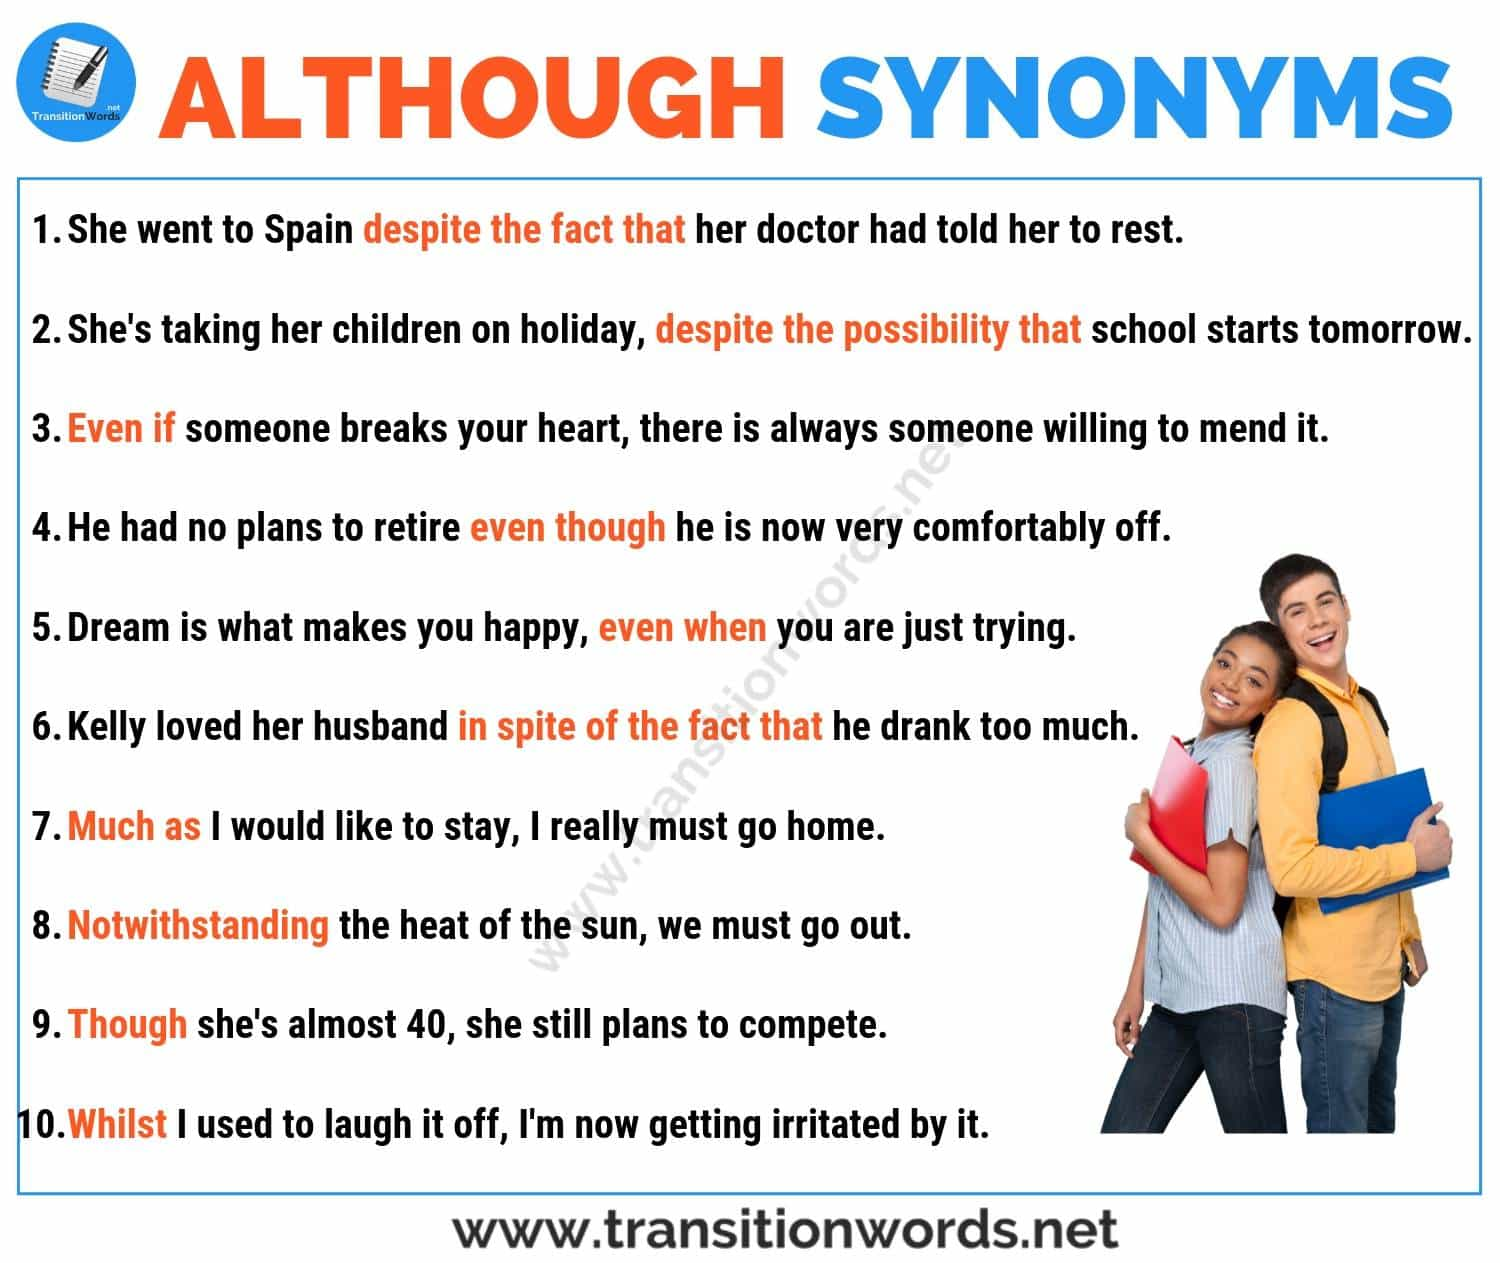 Although Synonym 18 Useful Synonyms For Although With